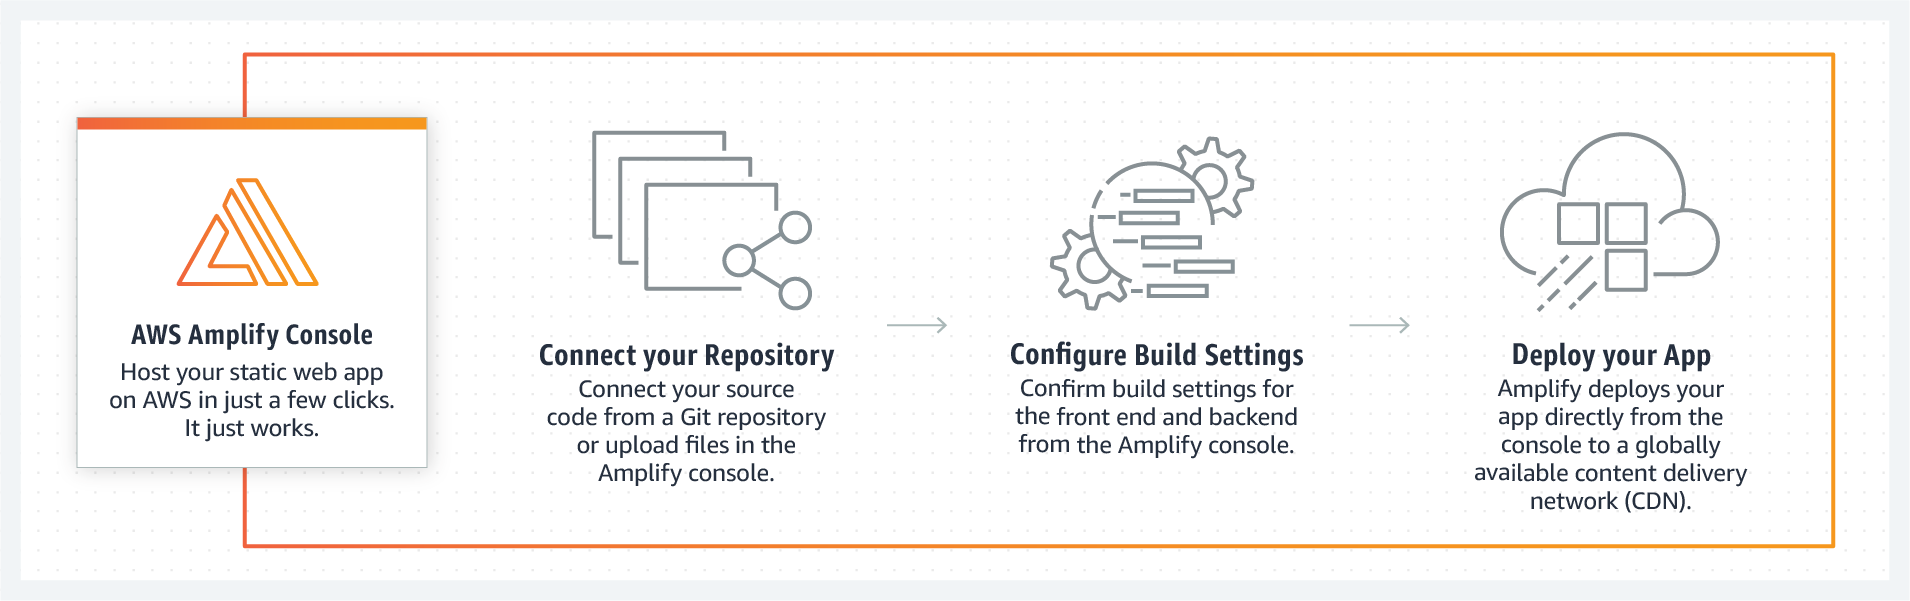 product-page-diagram_Amplify_How-it-works_2@2x